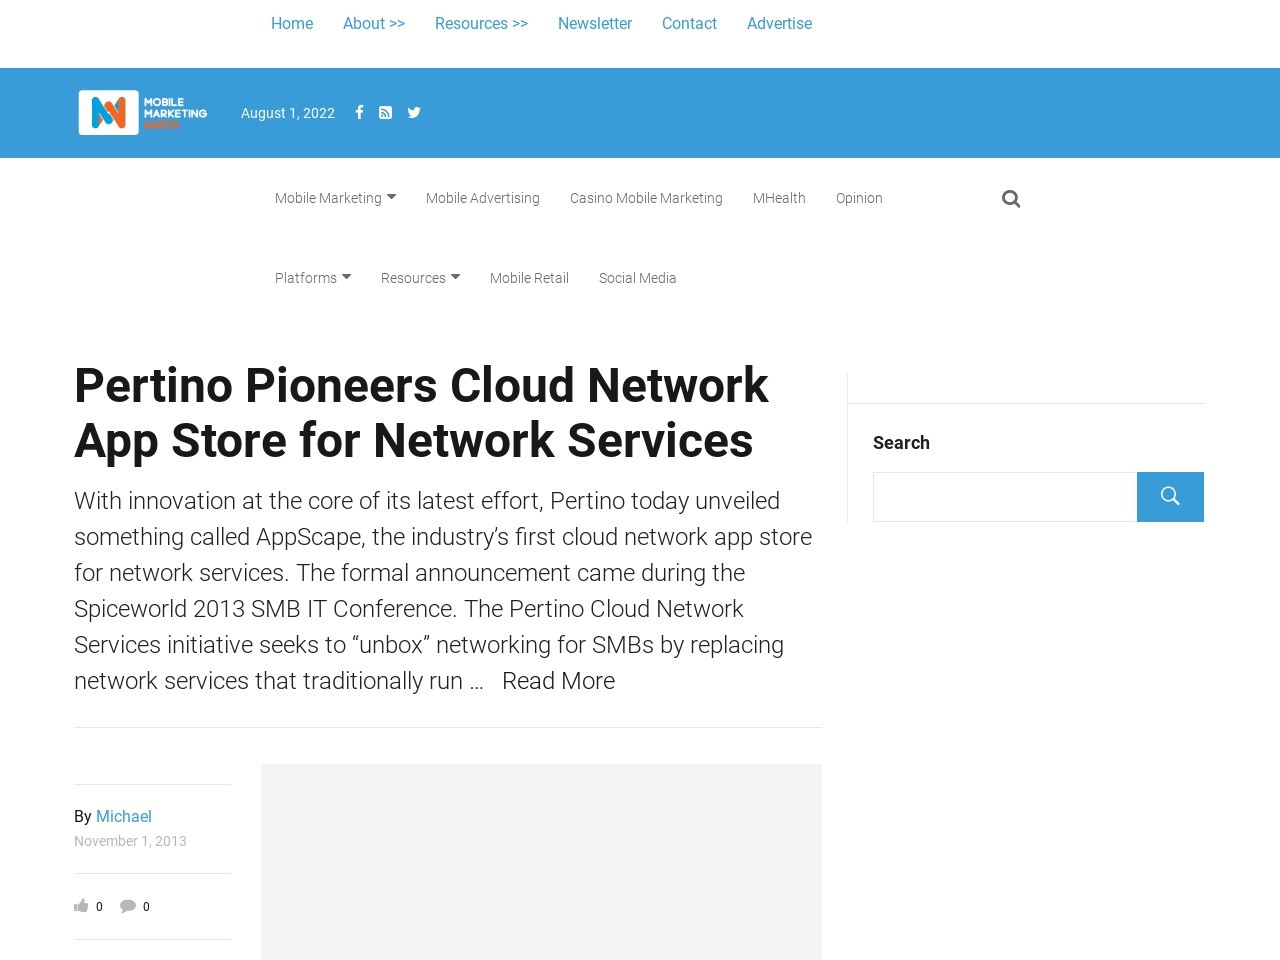 Pertino Pioneers Cloud Network App Store for Network Services